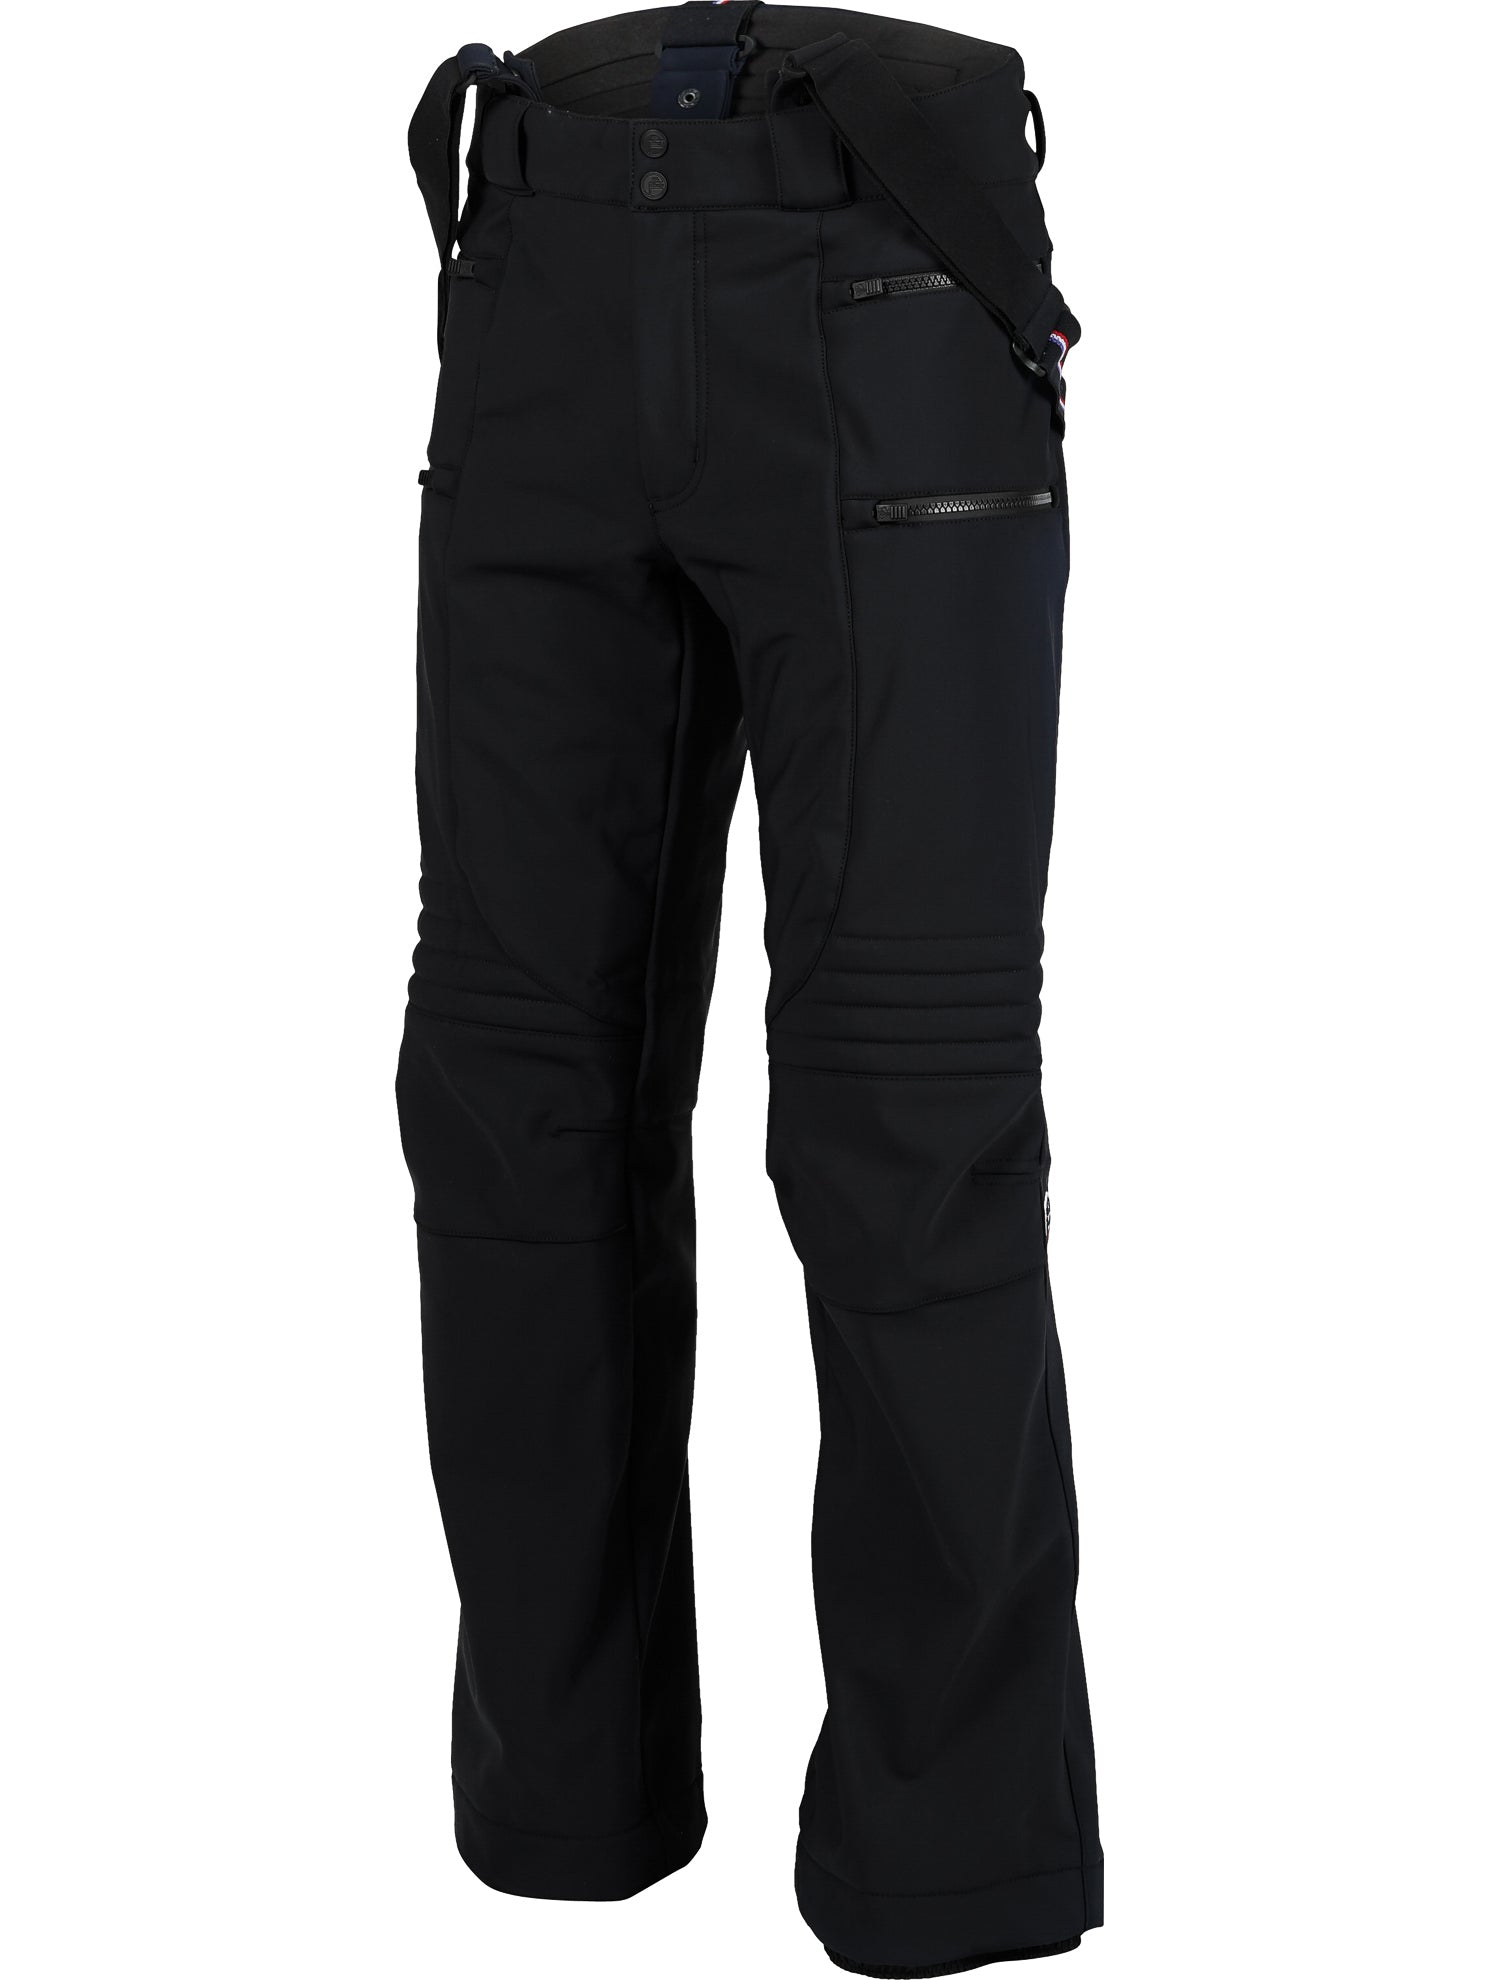 Flash Panelled Ski Pants - Noir